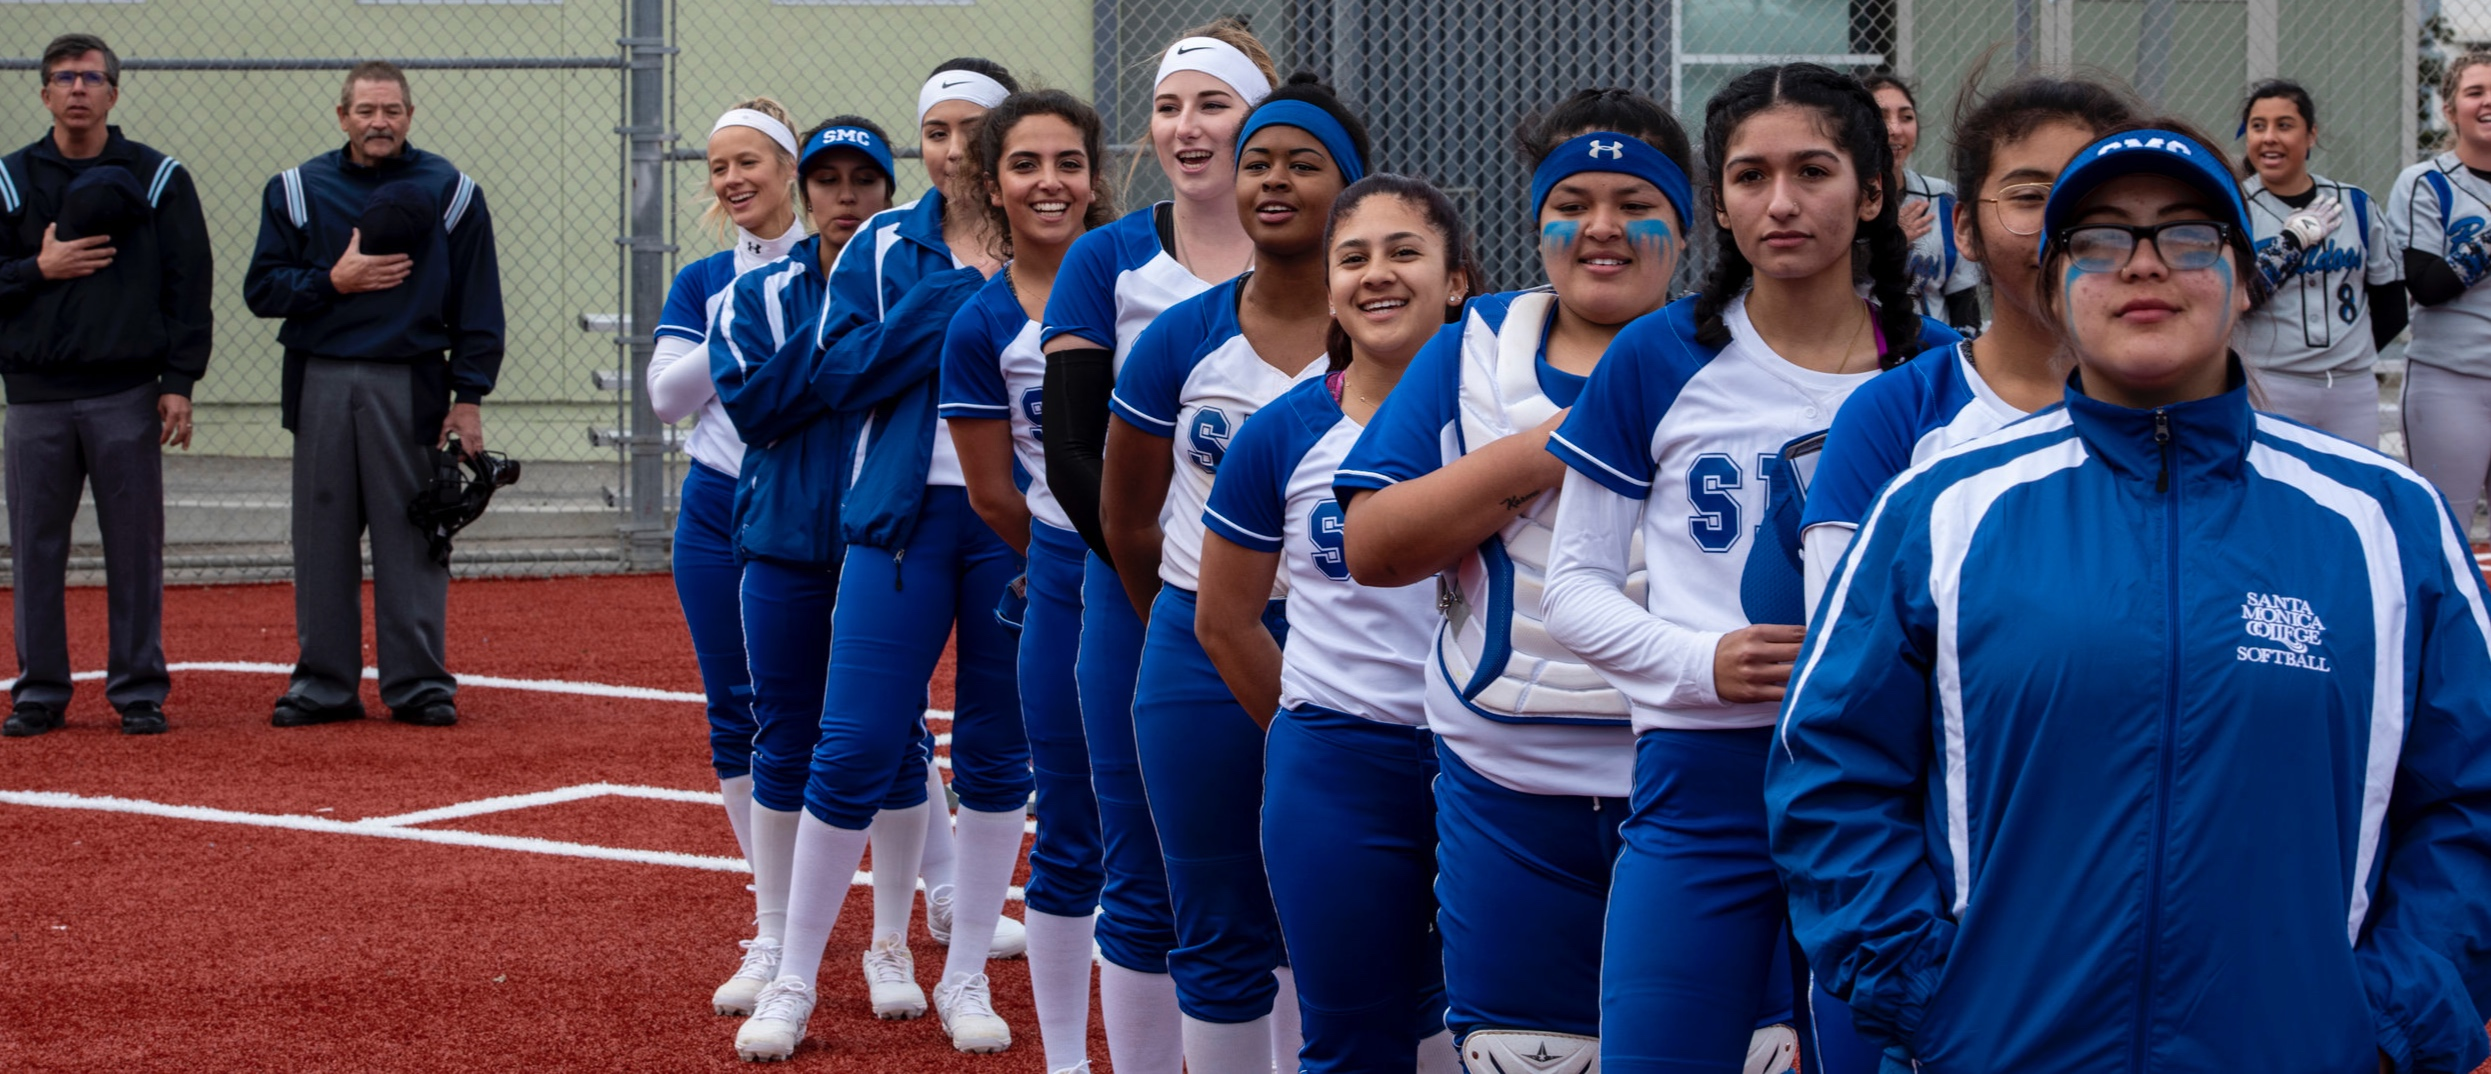 The female Corsair softball team stand for the national anthem on Thursday, February 21, 2019. They defeated the Allen Handcock Bulldogs 1-0 with seven strike outs and no runs. (Clyde Bates Jr./The Corsair)